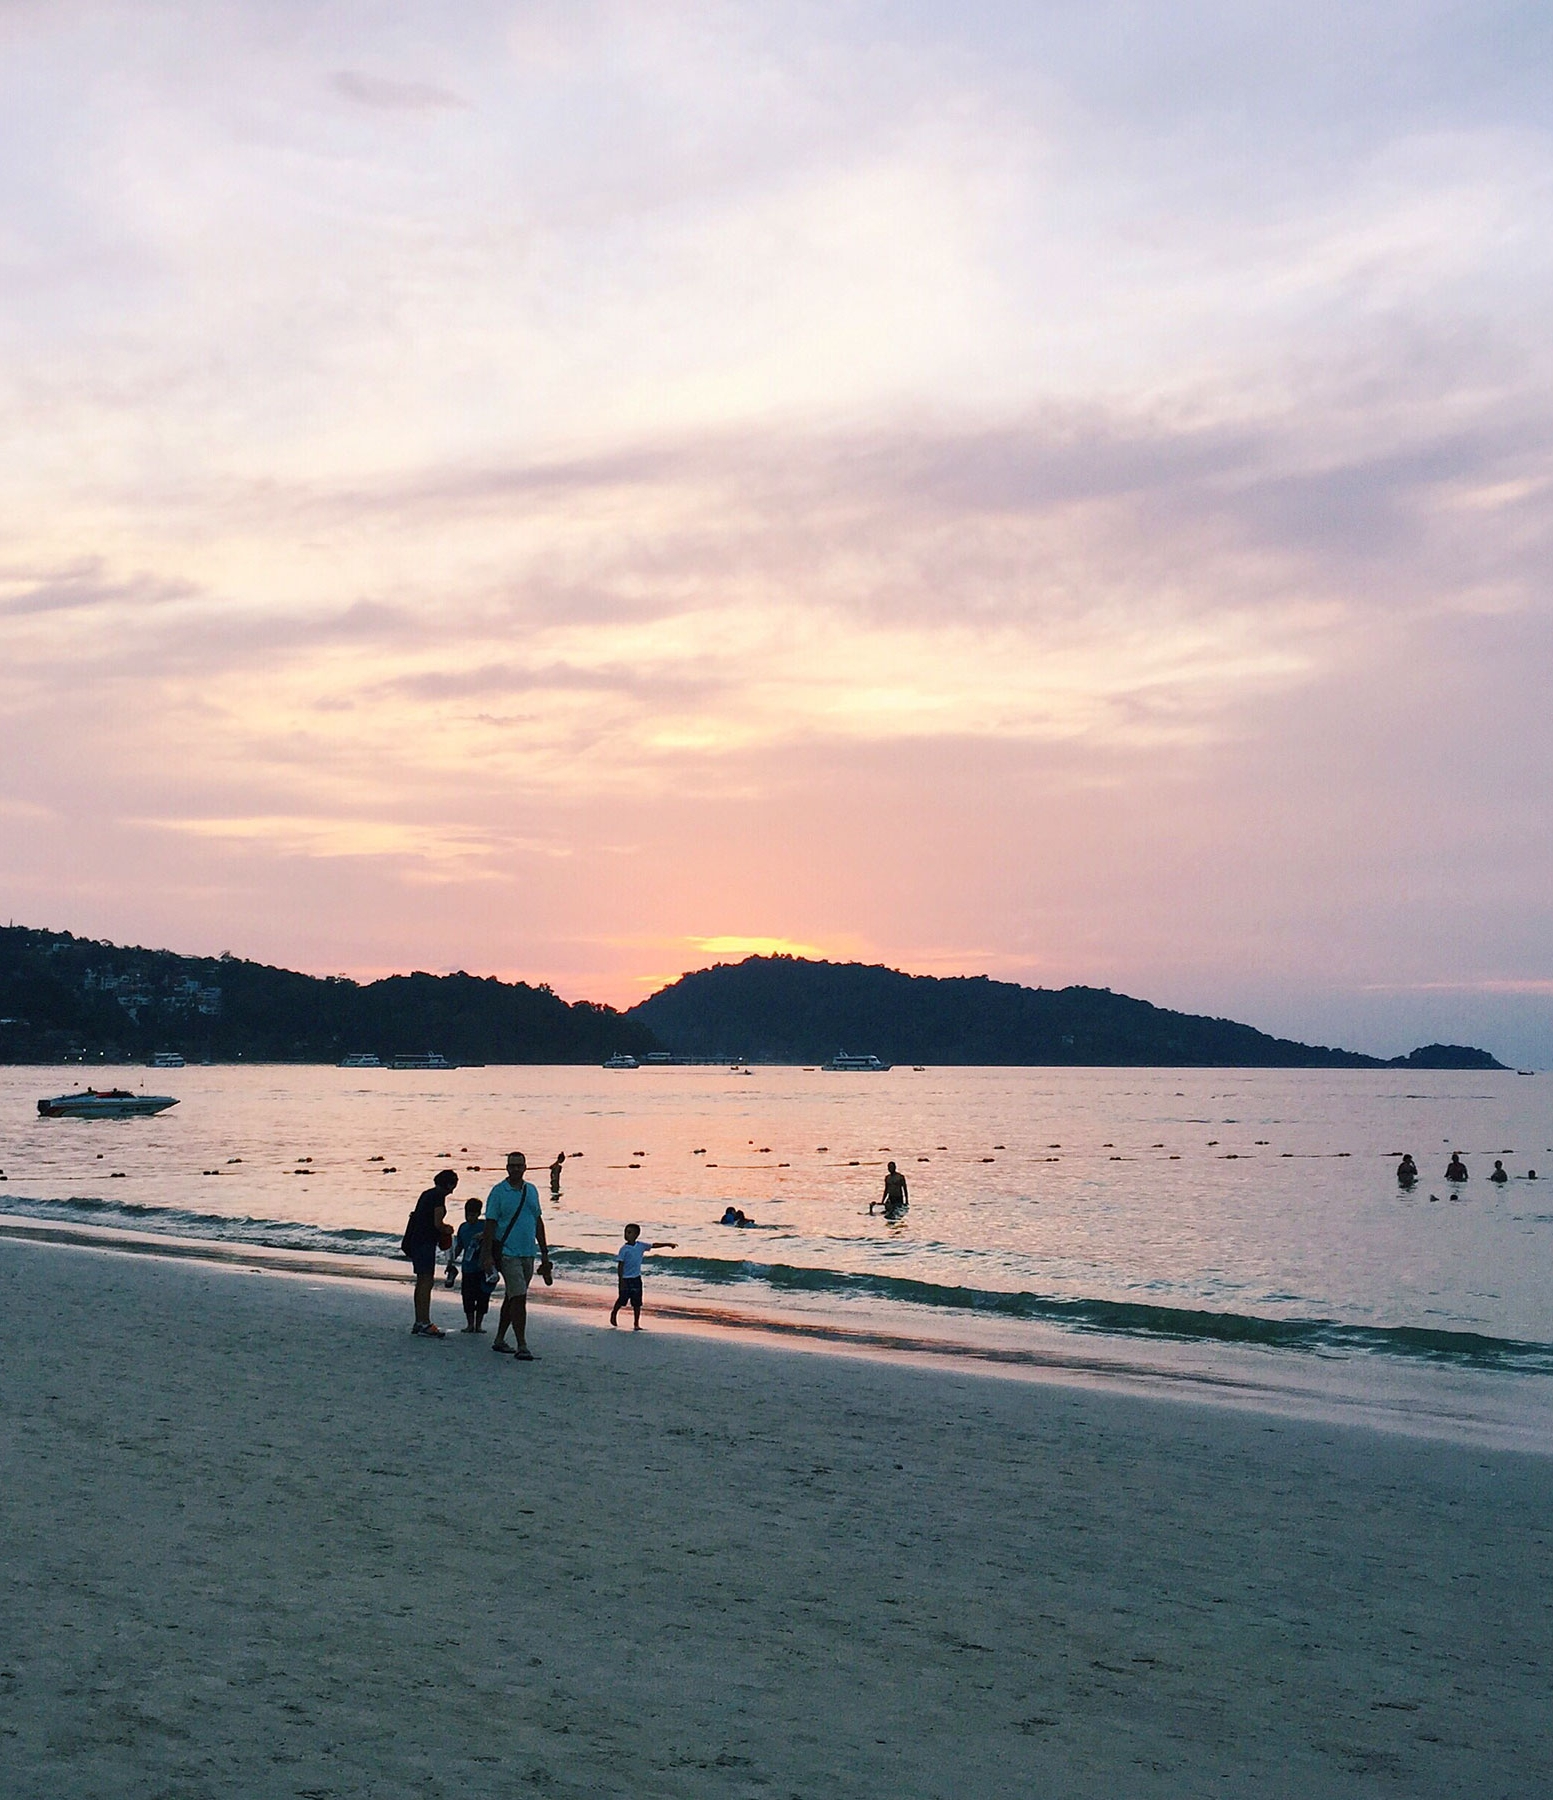 PATONG BEACH:    Patong Beach   is one of the most well-known beaches in Phuket with lots of shopping, bars, nightlife, and restaurants because of it's proximity to Bangla Road. It's a touristy beach, so if you don't like crowds and noise, check out Paradise Beach.